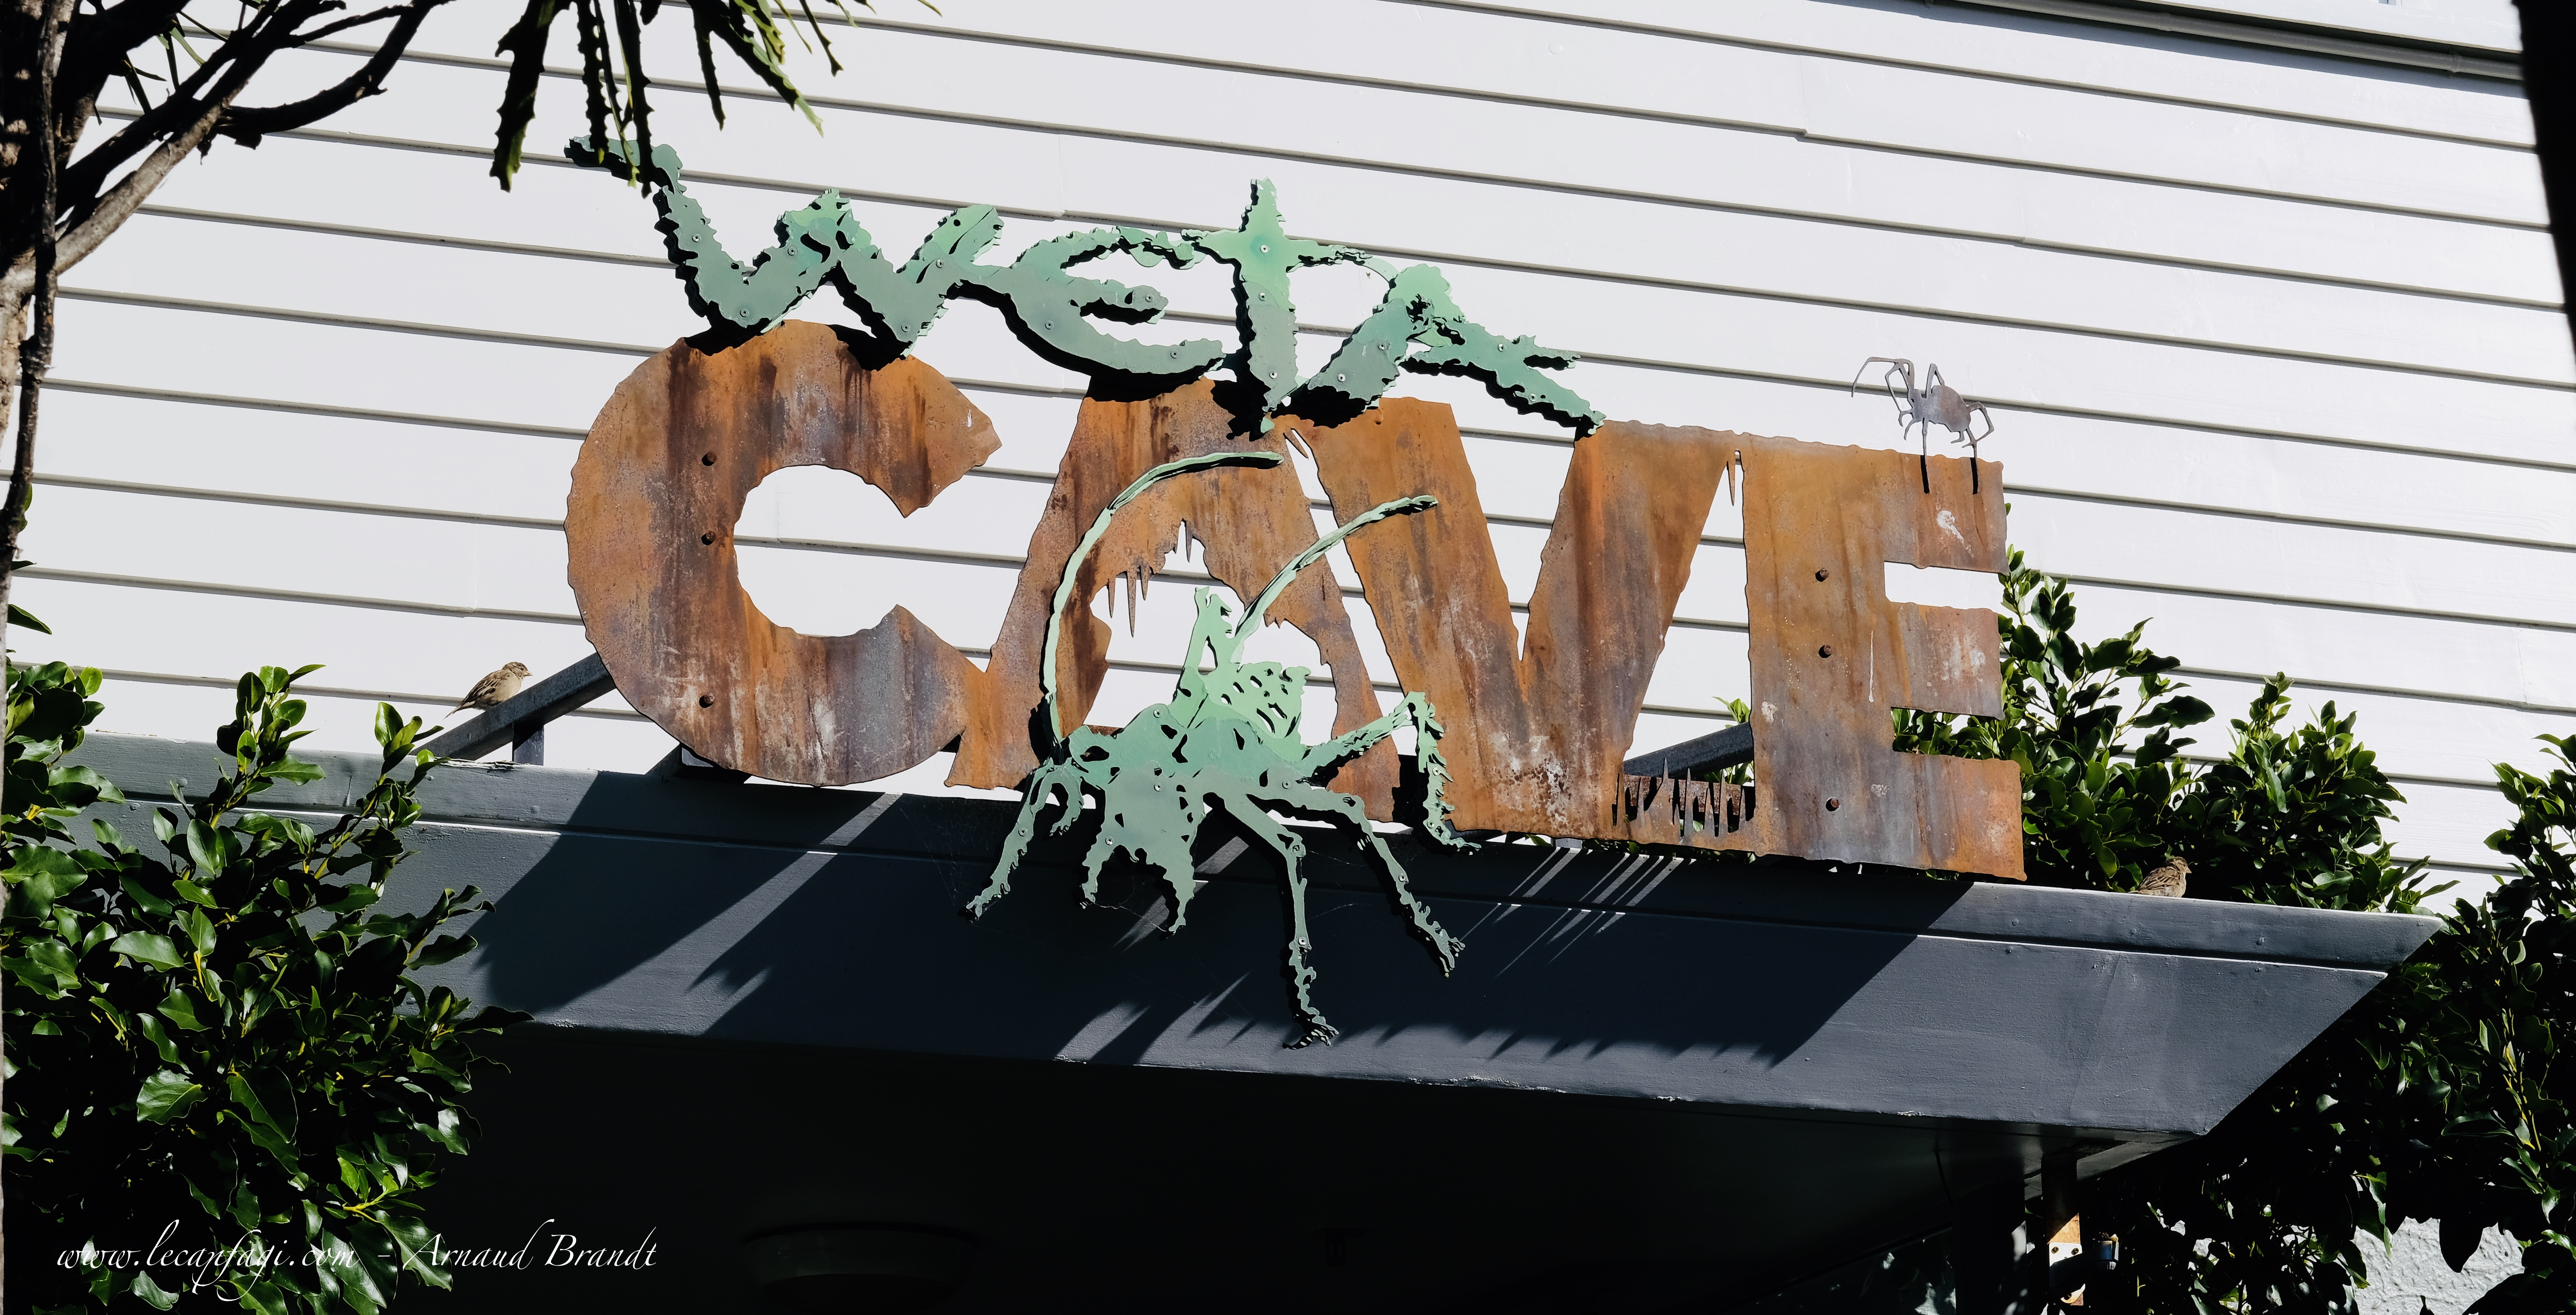 Wellington - Weta Cave